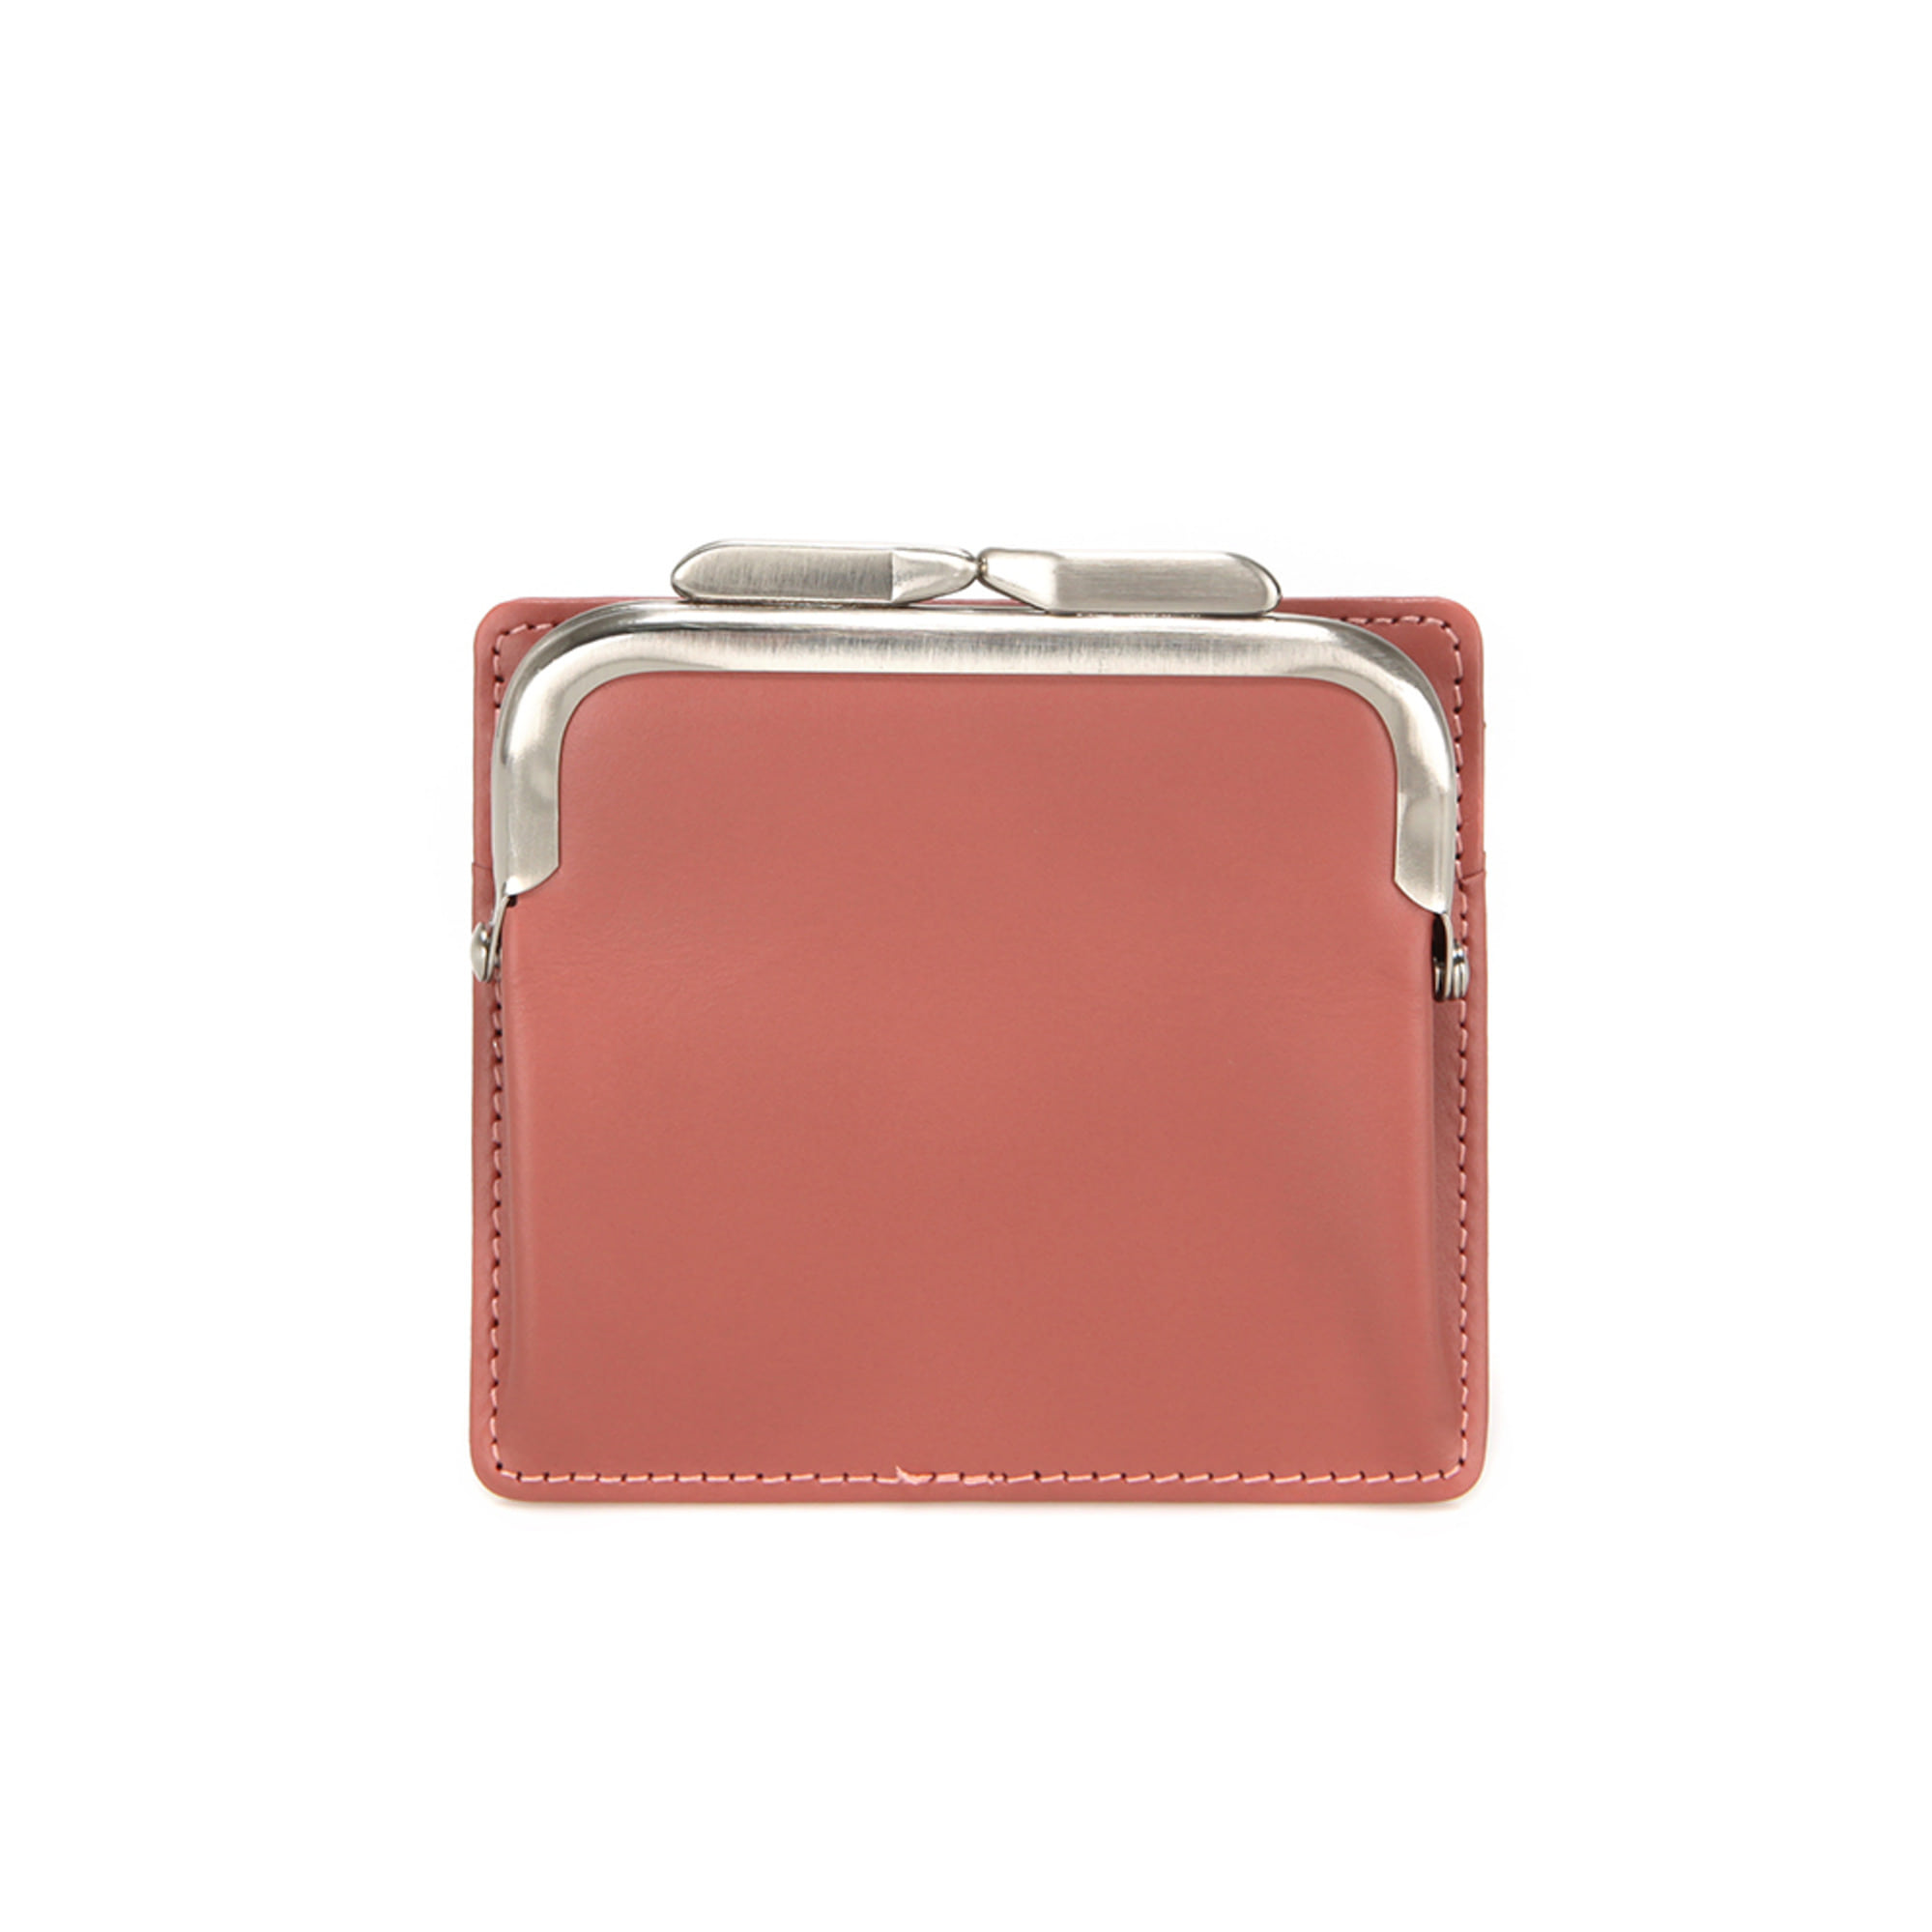 [DISCONTINUE] FRAME CARD WALLET - LIGHT BRICK